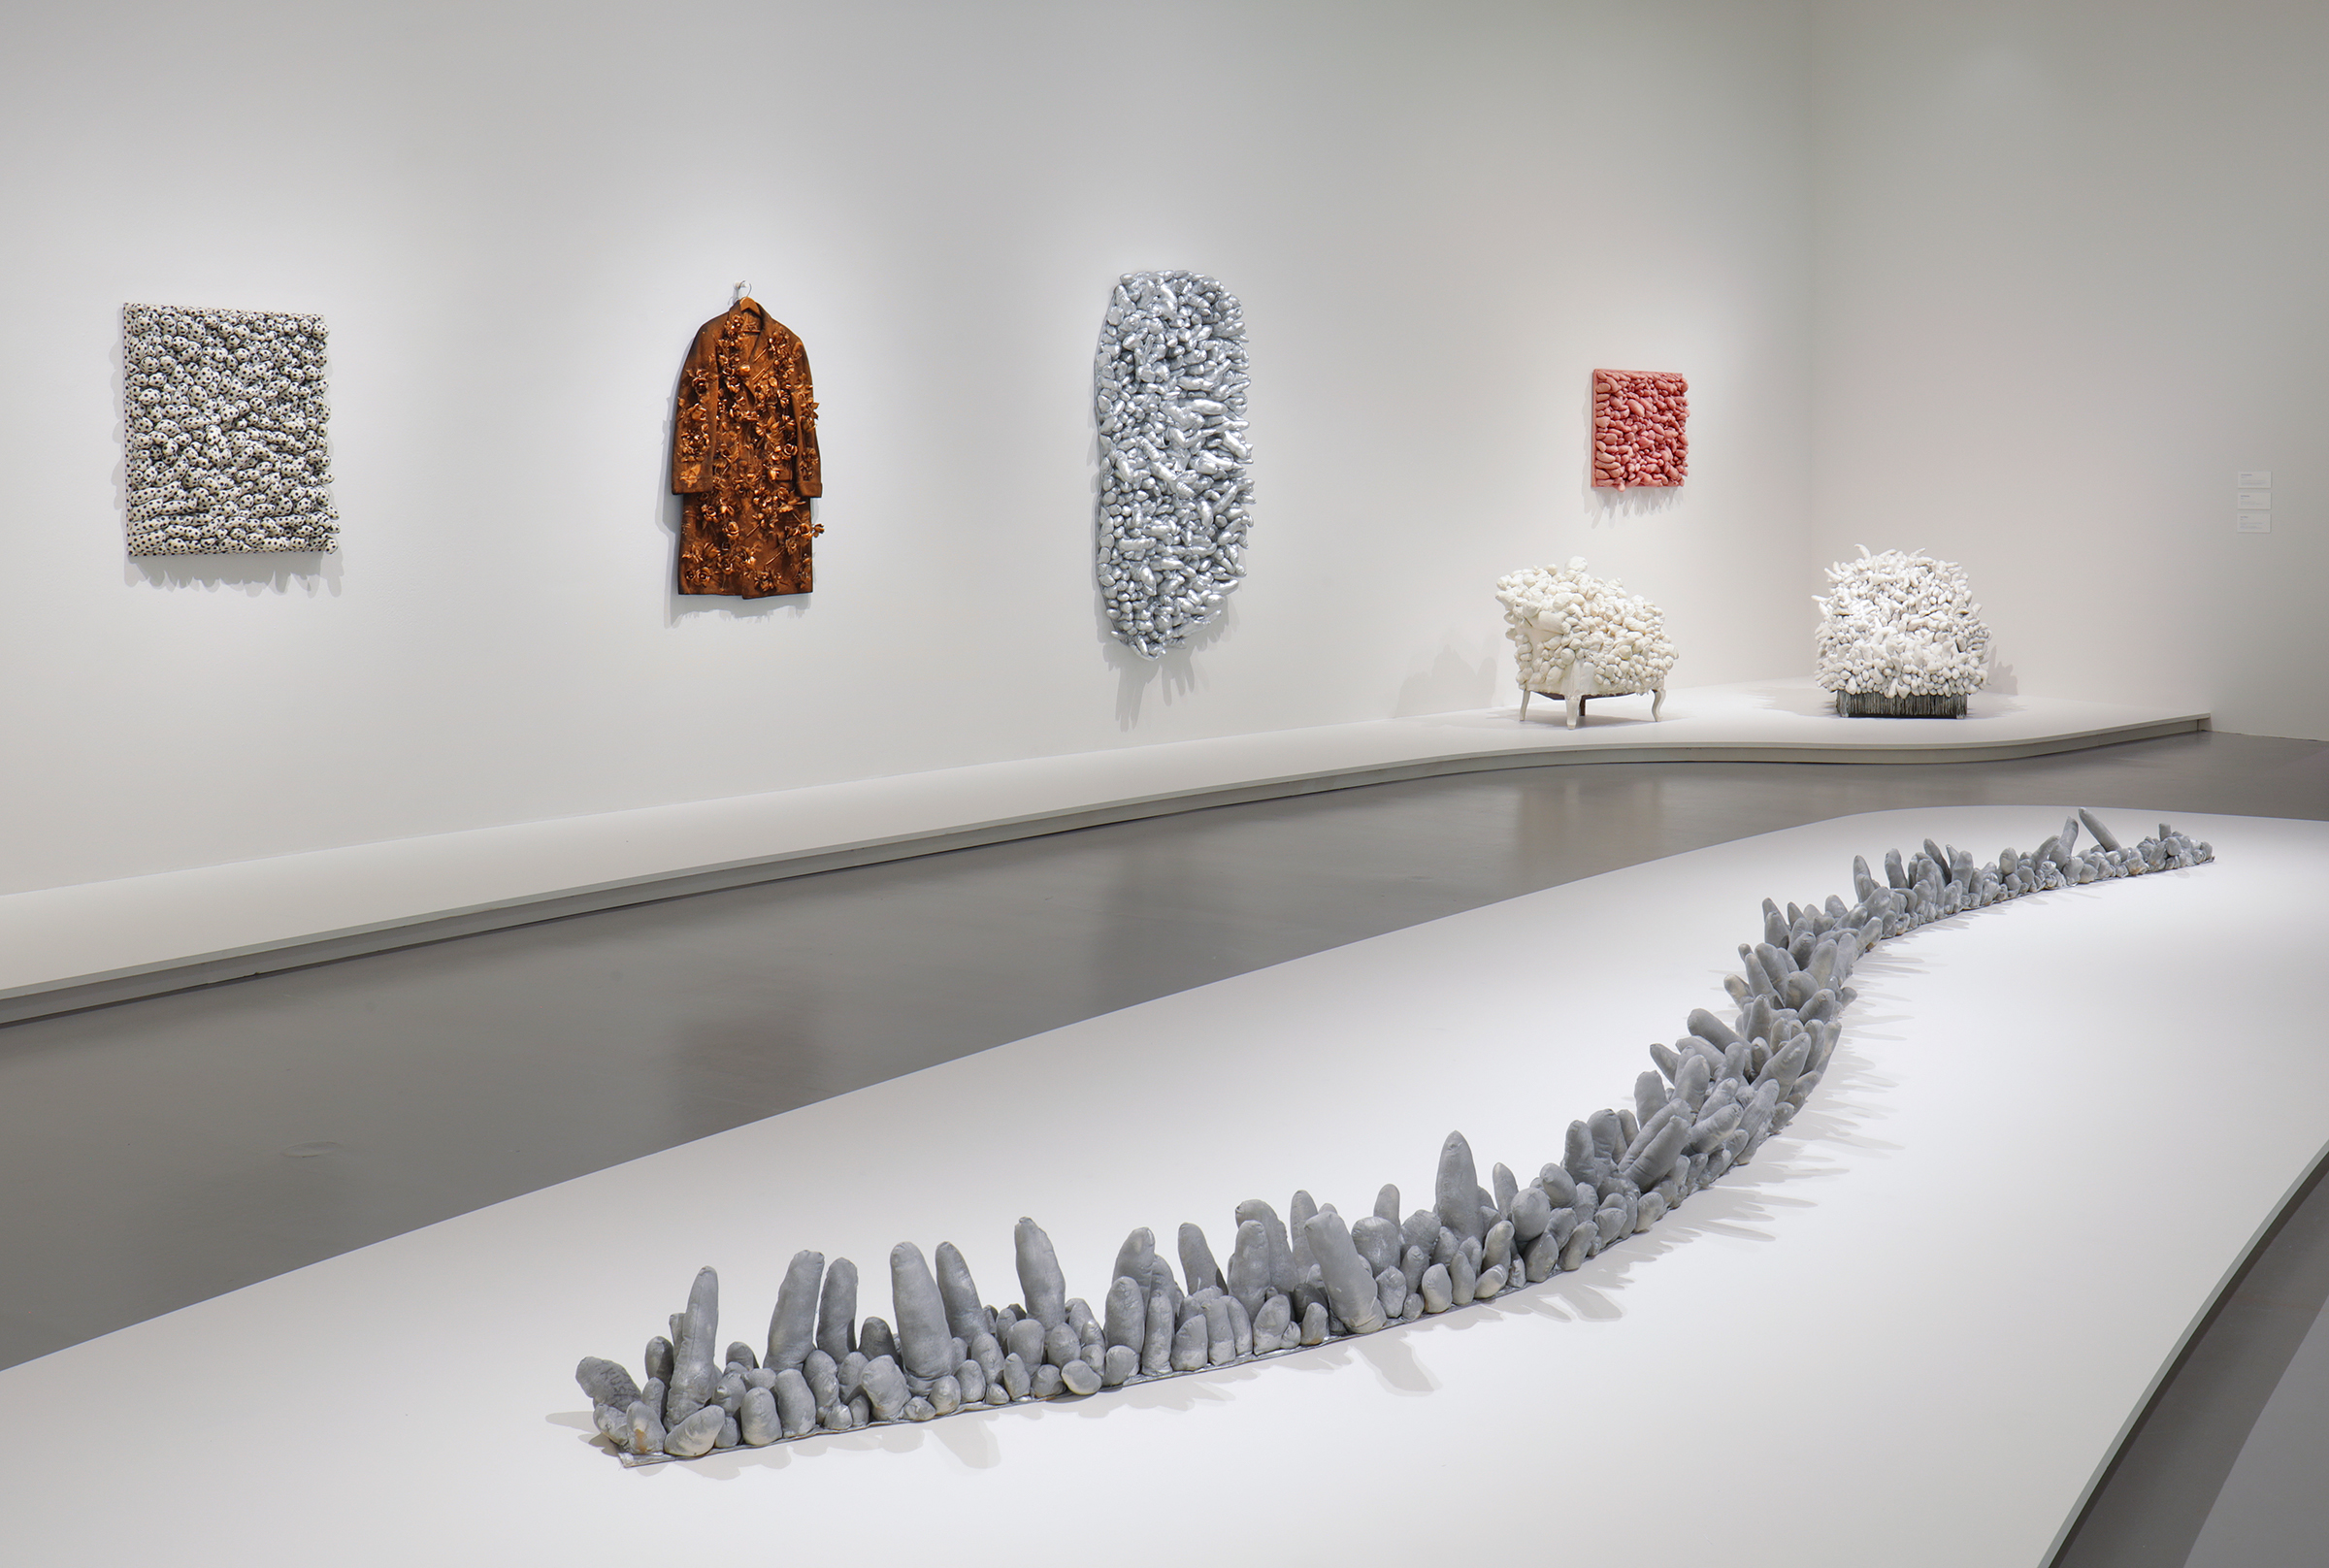 Left to right: Blue Spots, 1965; Flowers – Overcoat, 1964; A Snake, 1974; Ennui, 1976; Accumulation, 1962-64; Red Stripes, 1965; Arm Chair, 1963